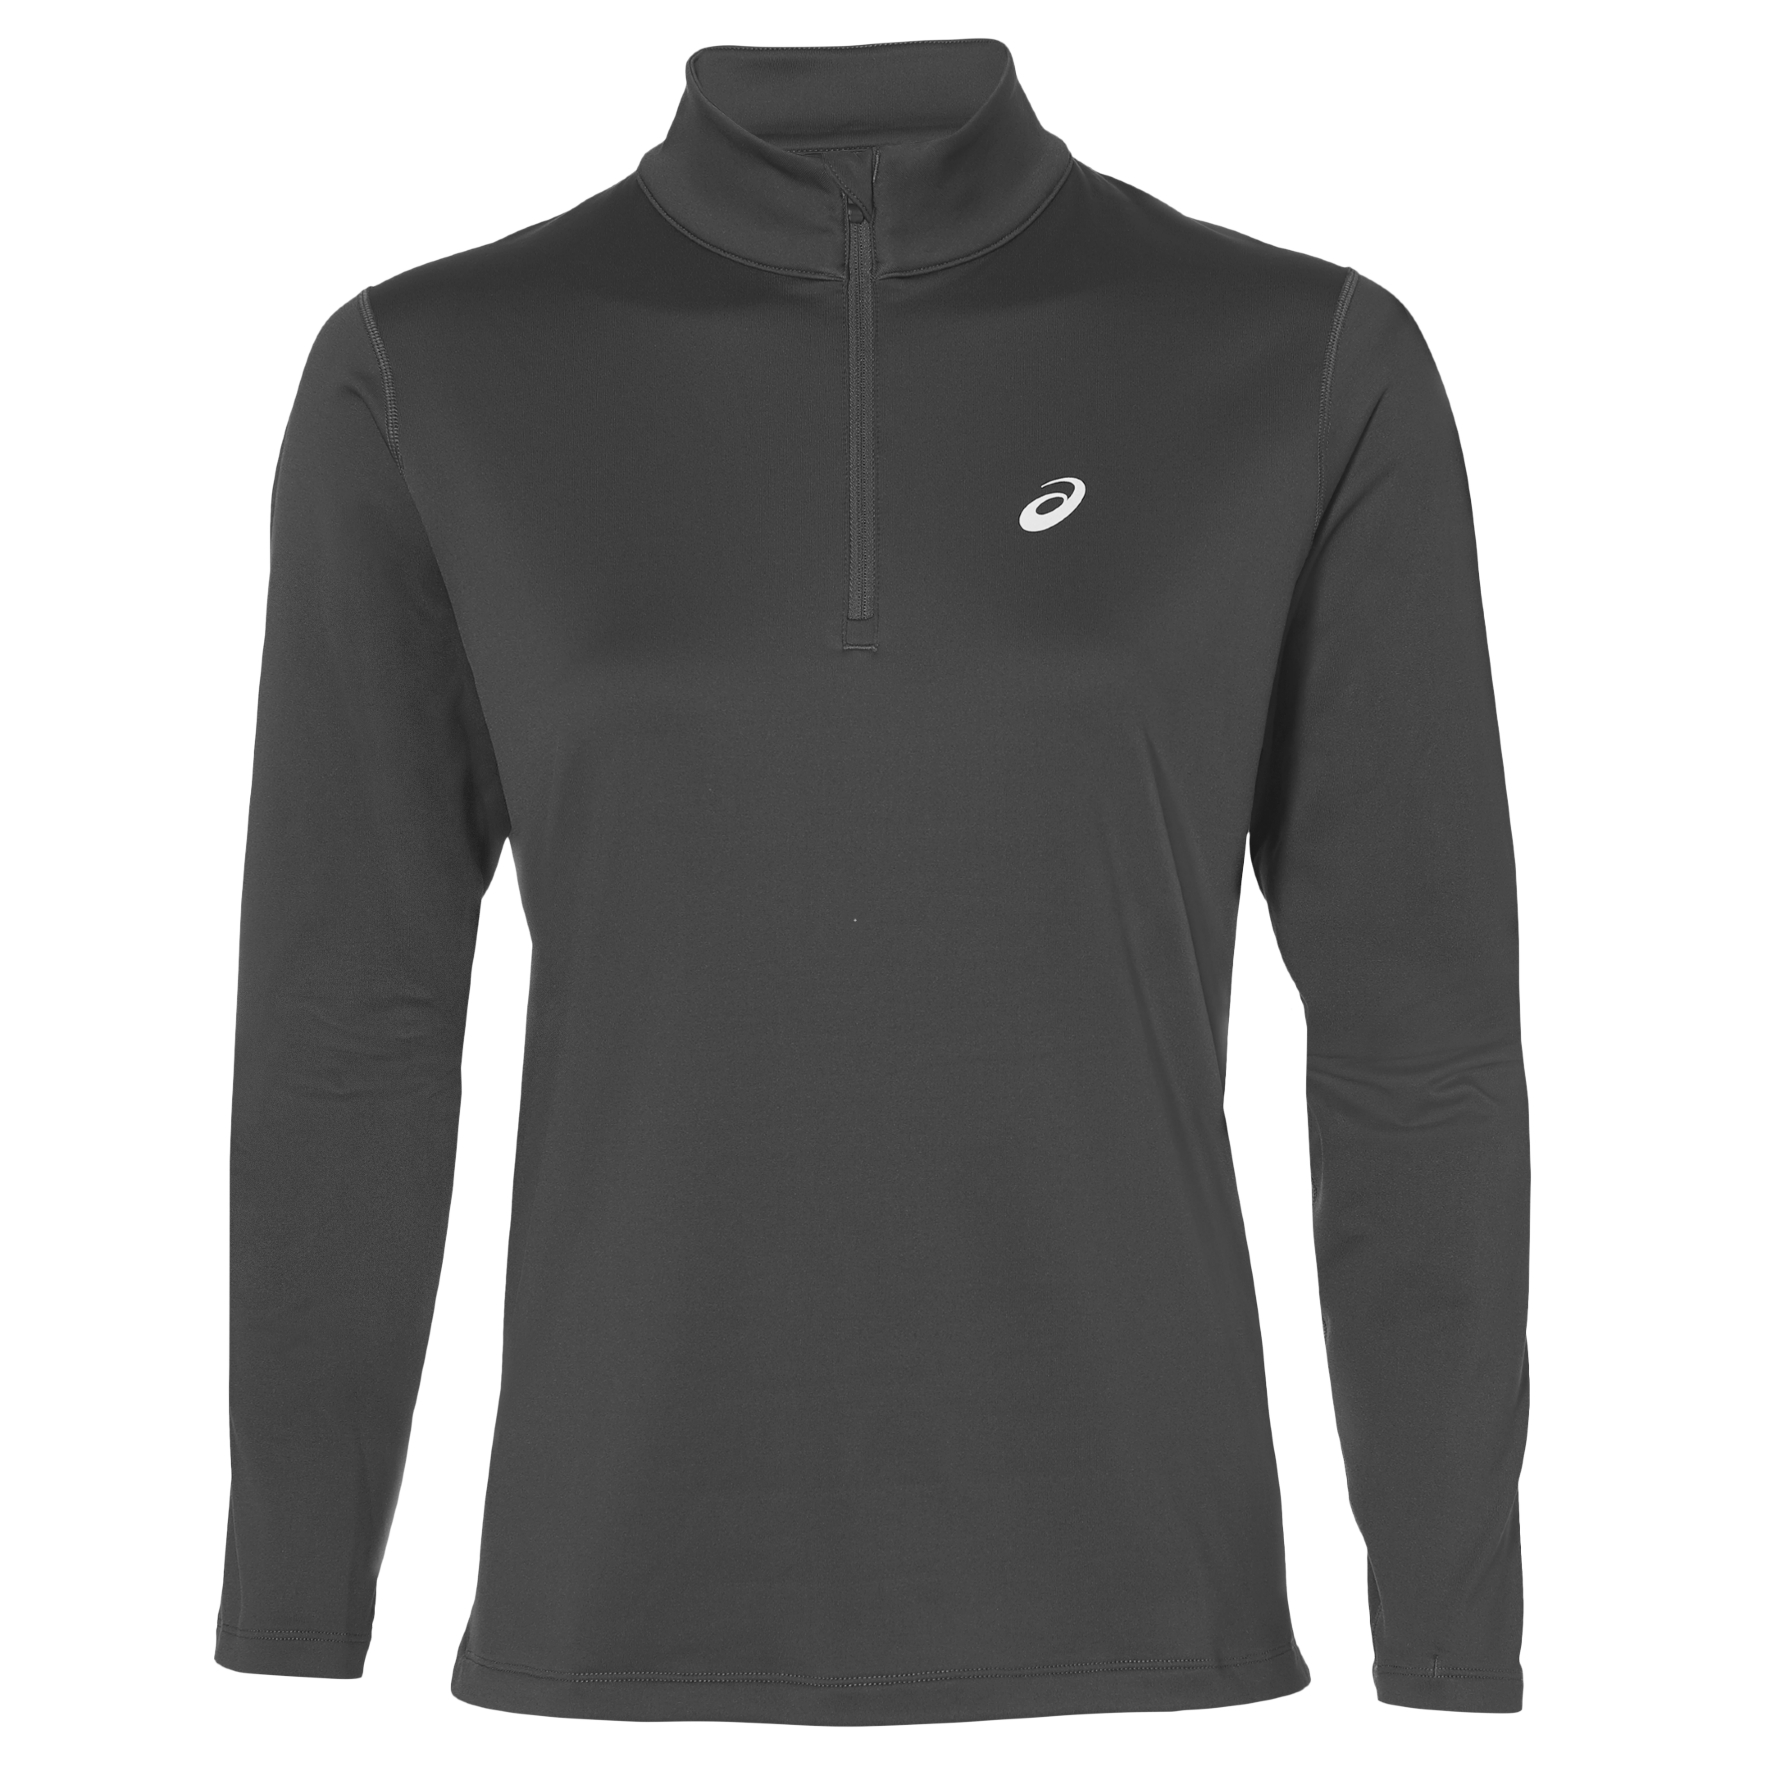 e3a663d2789 Wiggle | Asics Women's Silver LS Winter 1/2 Zip Top | Long Sleeve Running  Tops